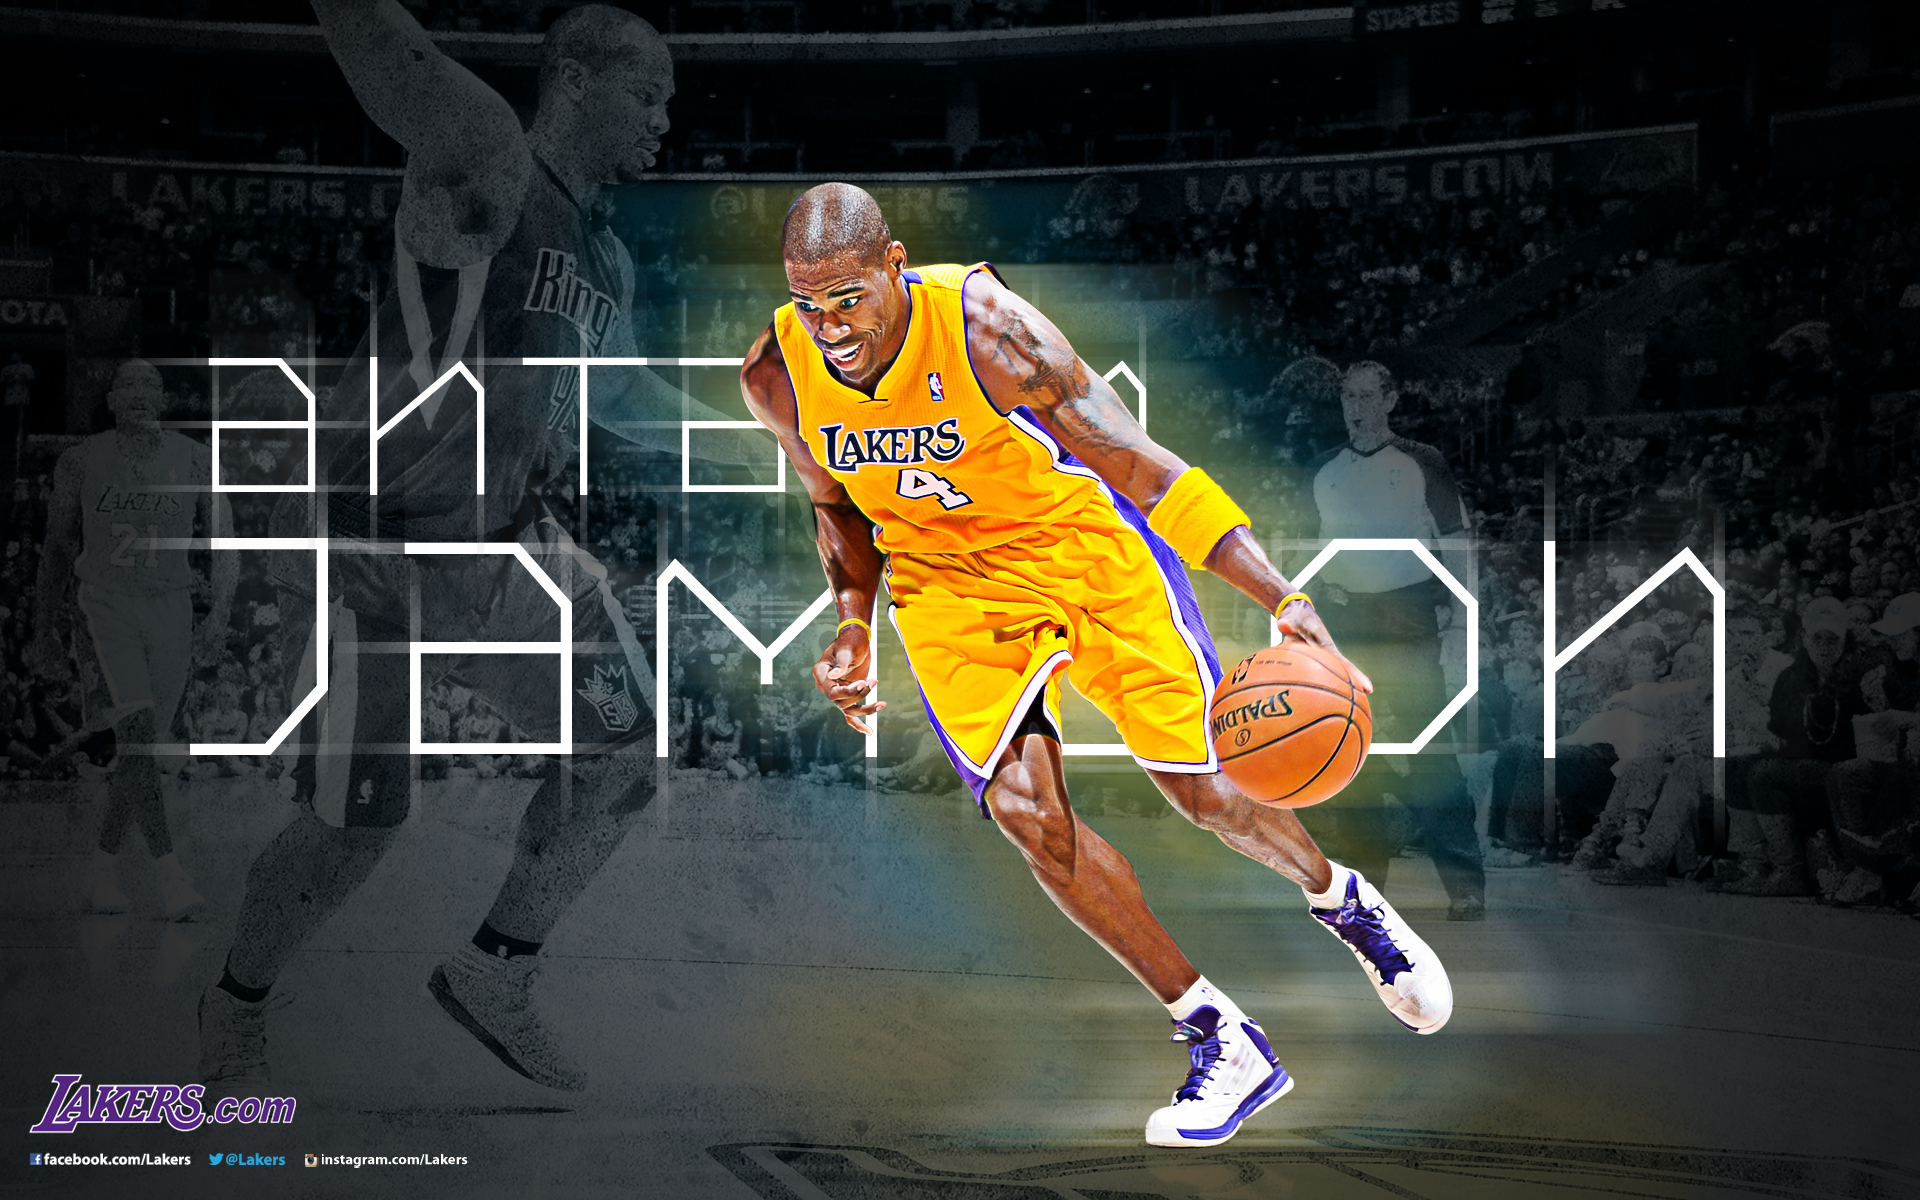 lakers desktop wallpapers the official site of the los